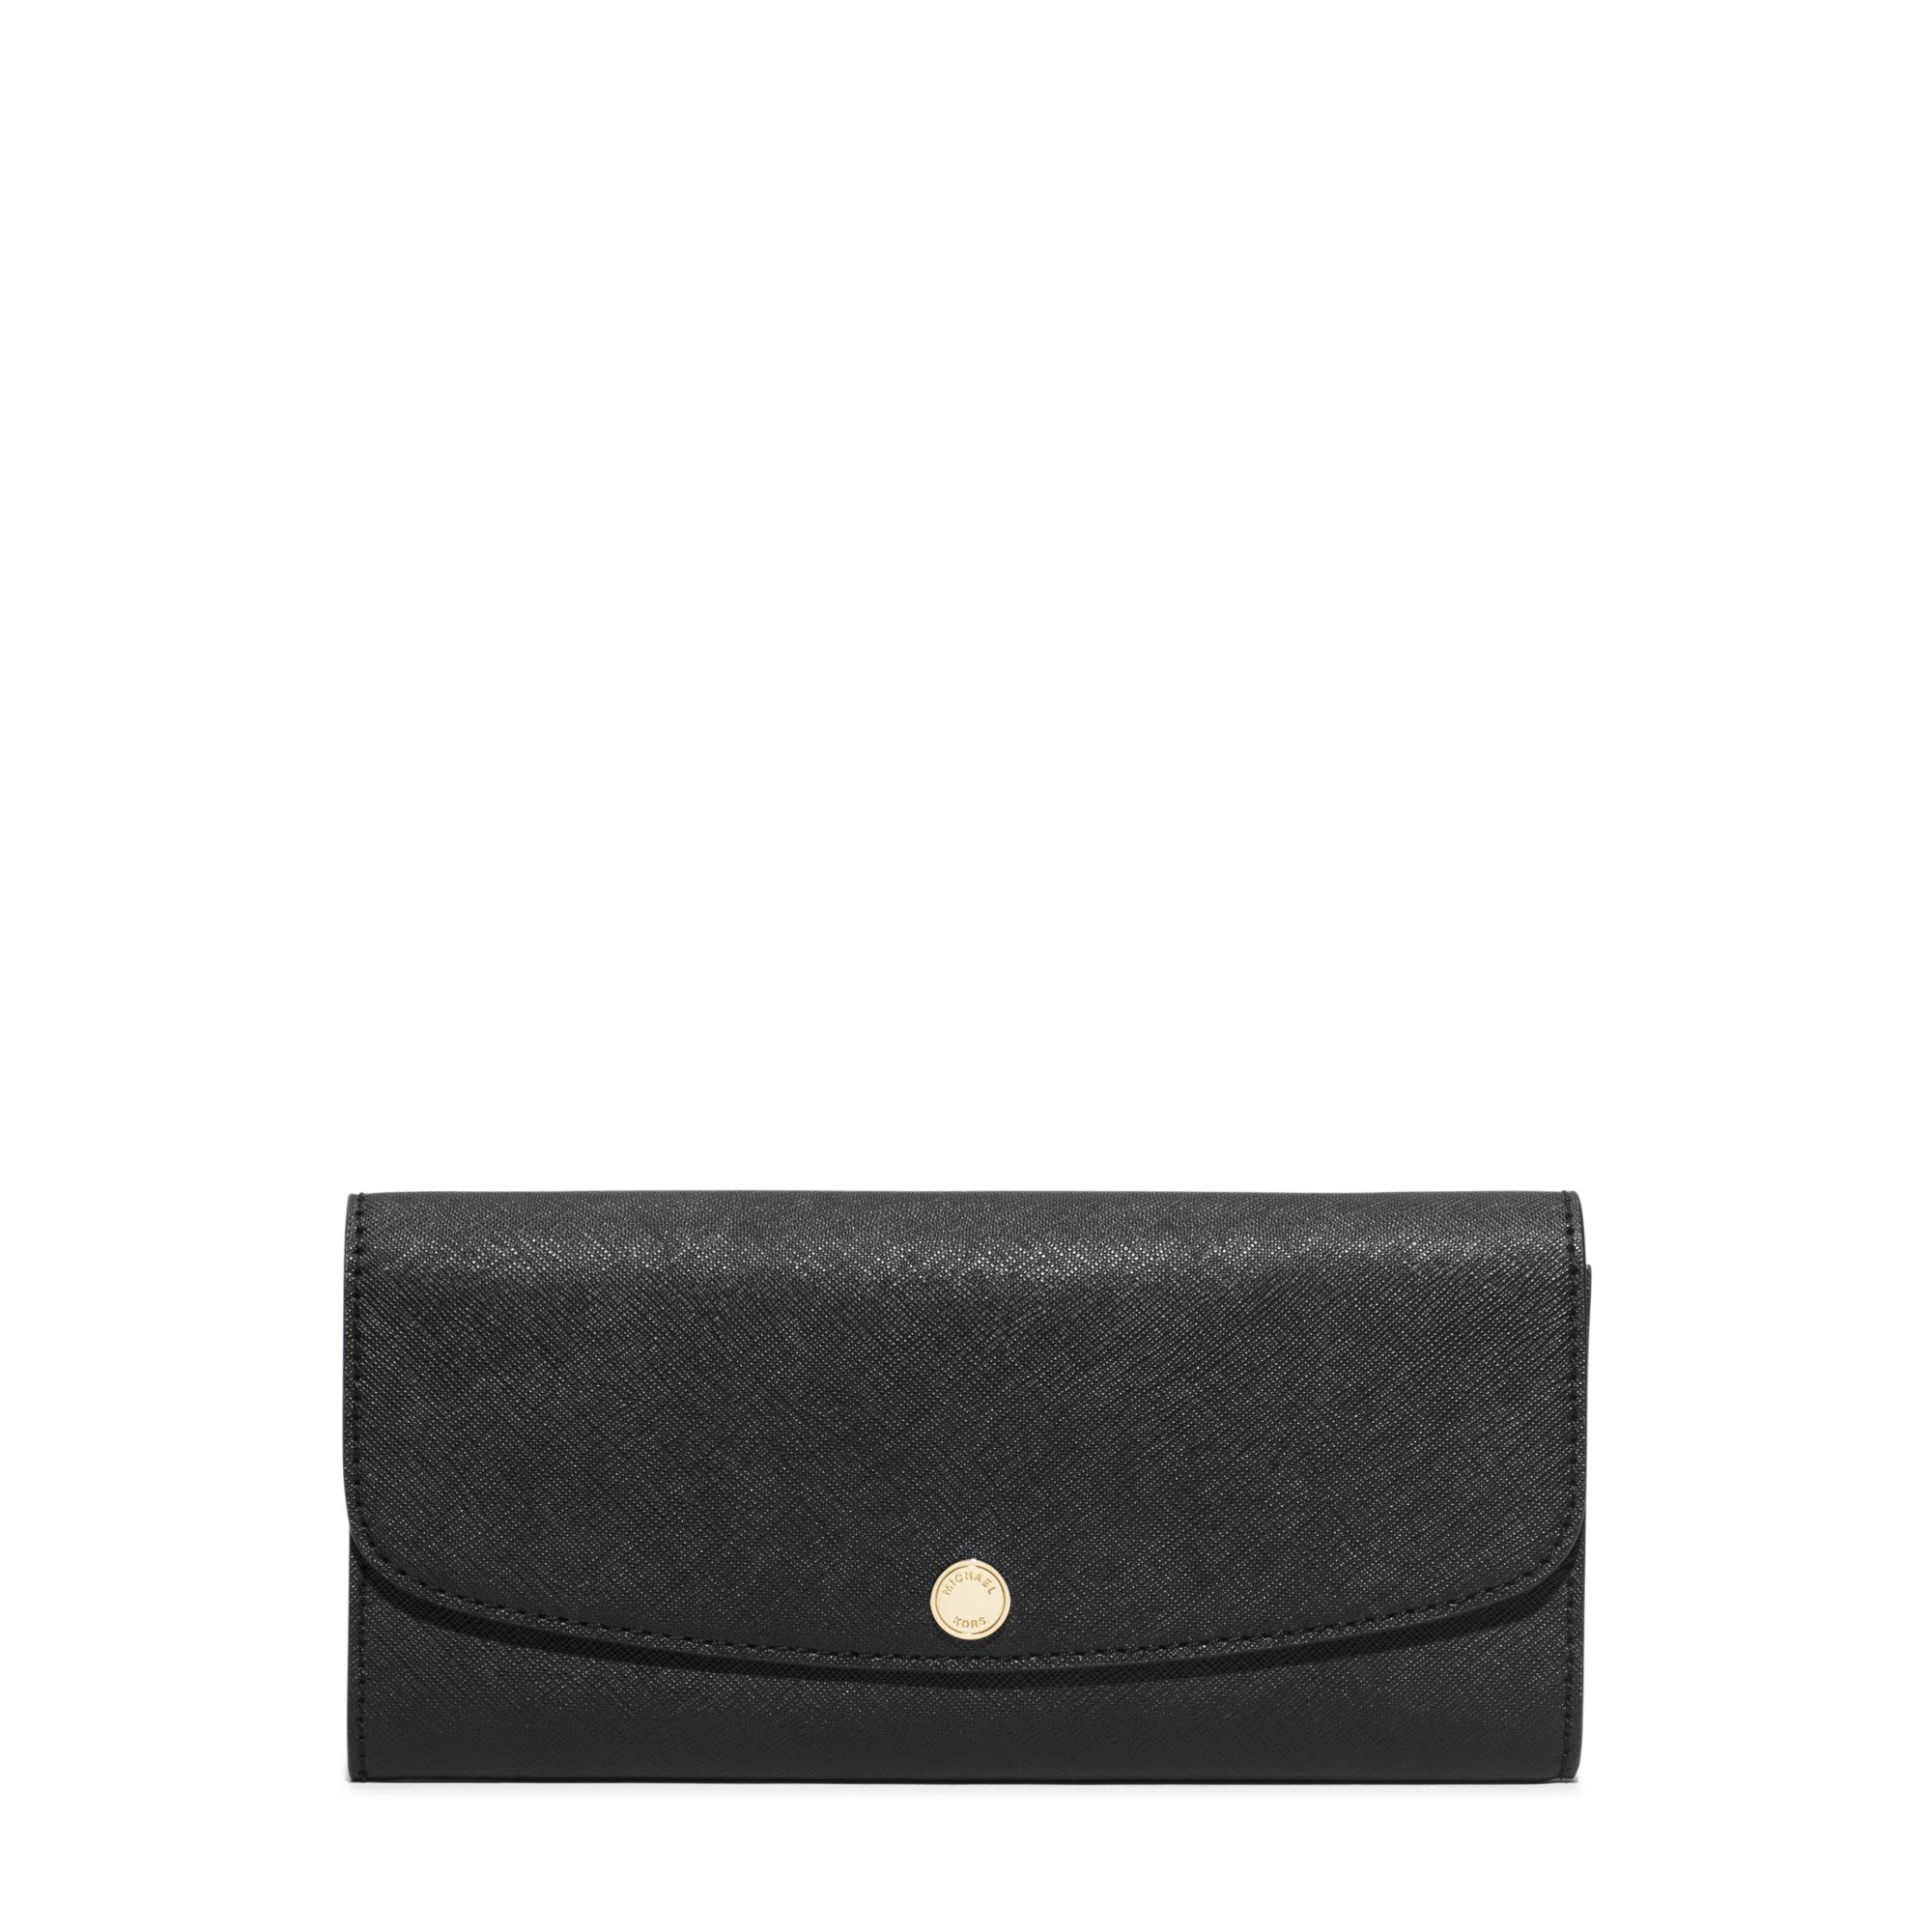 6caaa6b148a2 Michael Kors Juliana Large 3-in-1 Saffiano Leather Wallet in Black ...